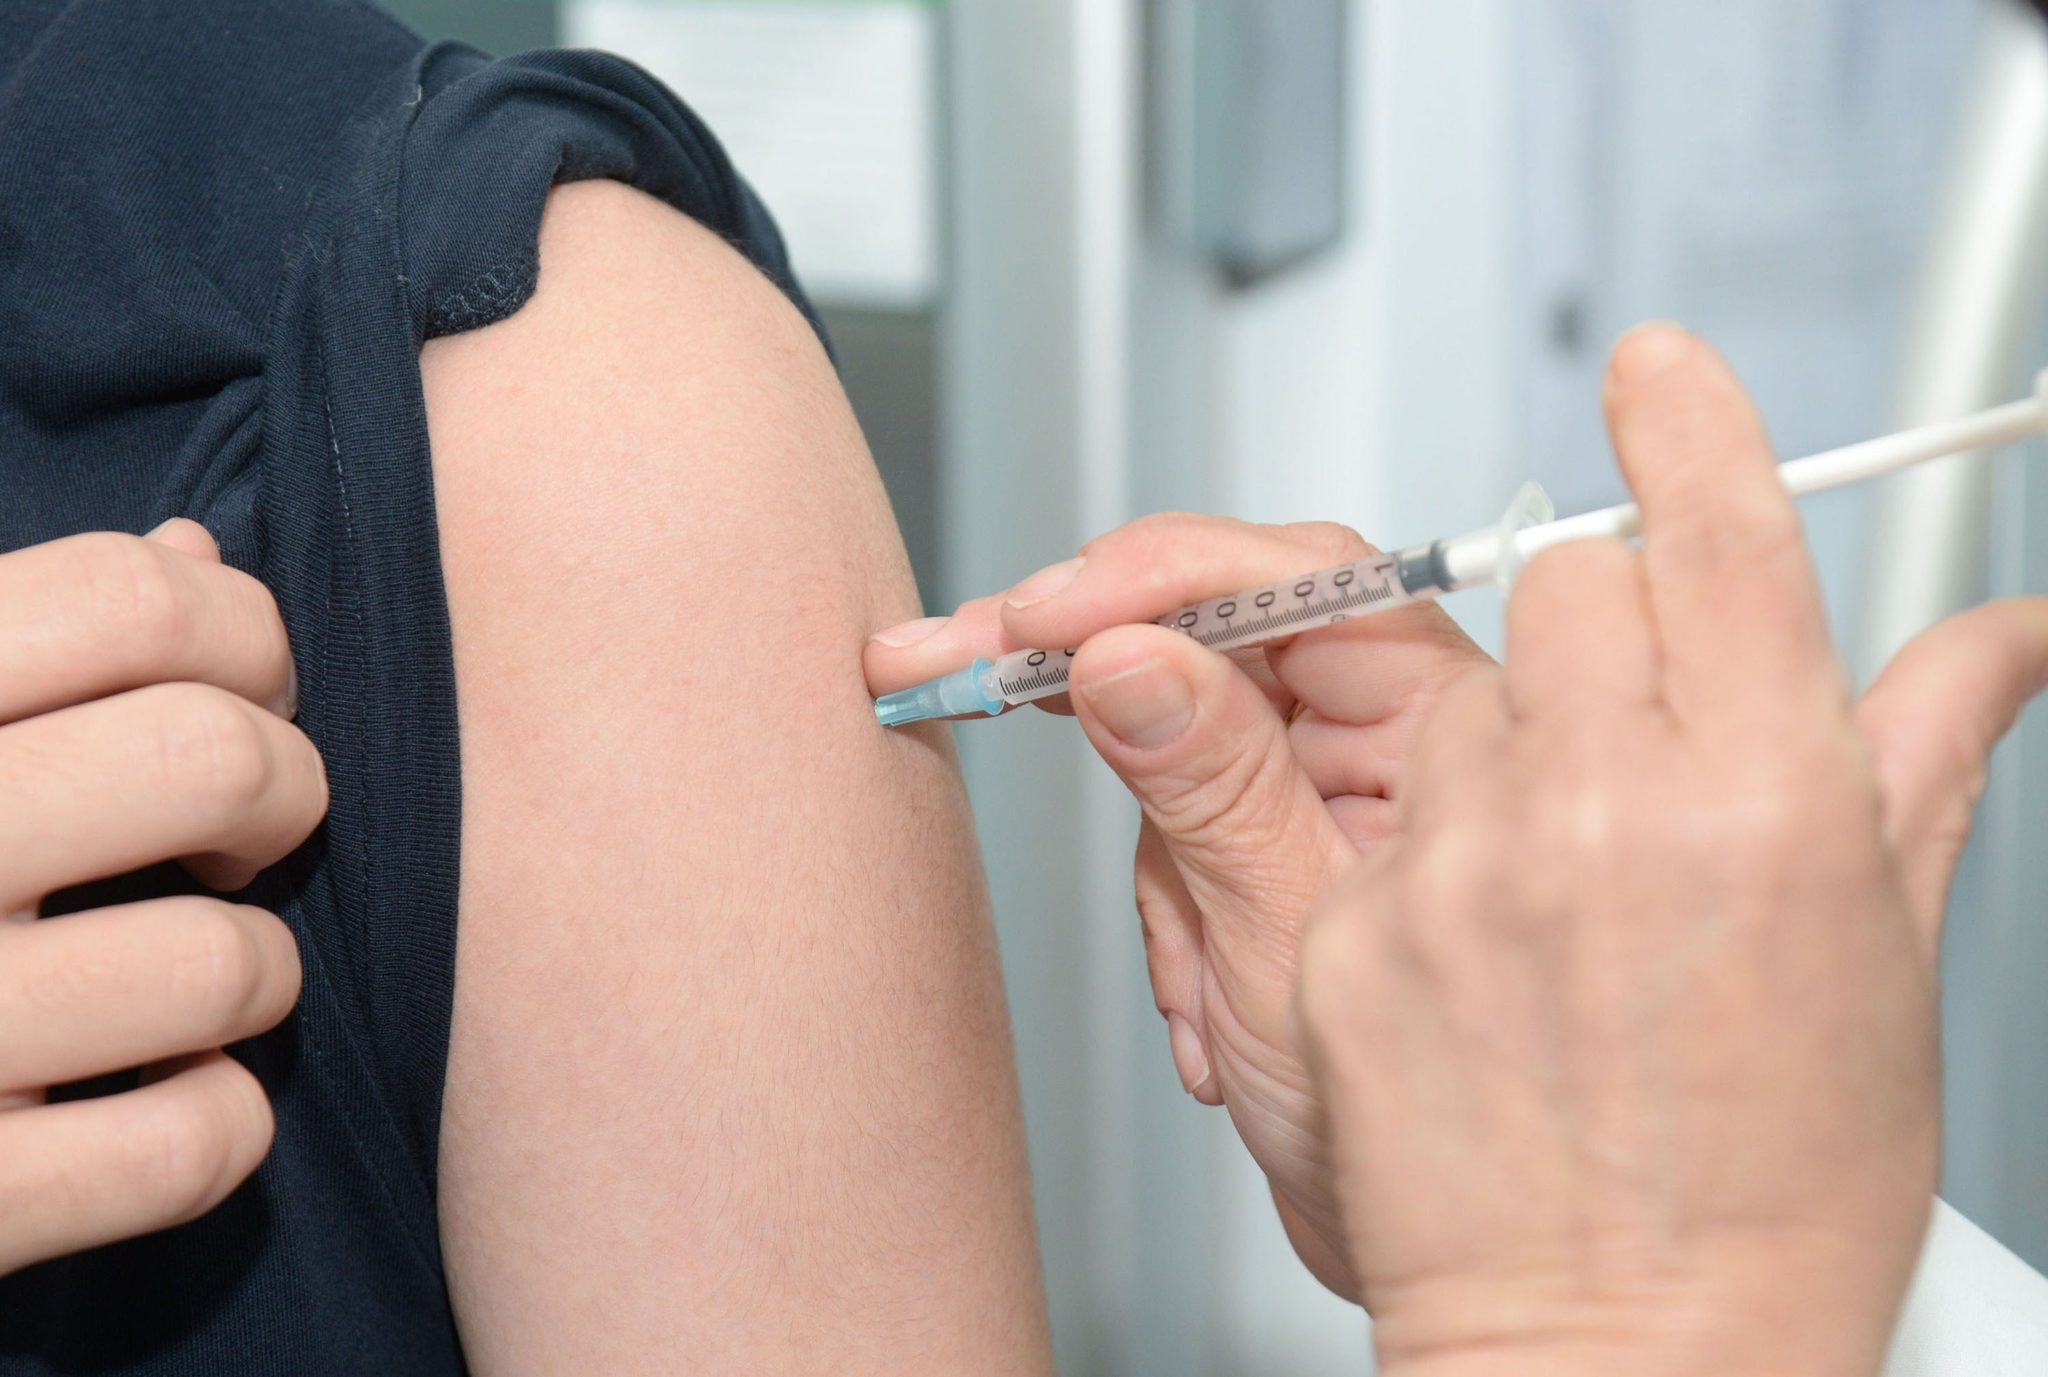 getting a vaccination in the arm